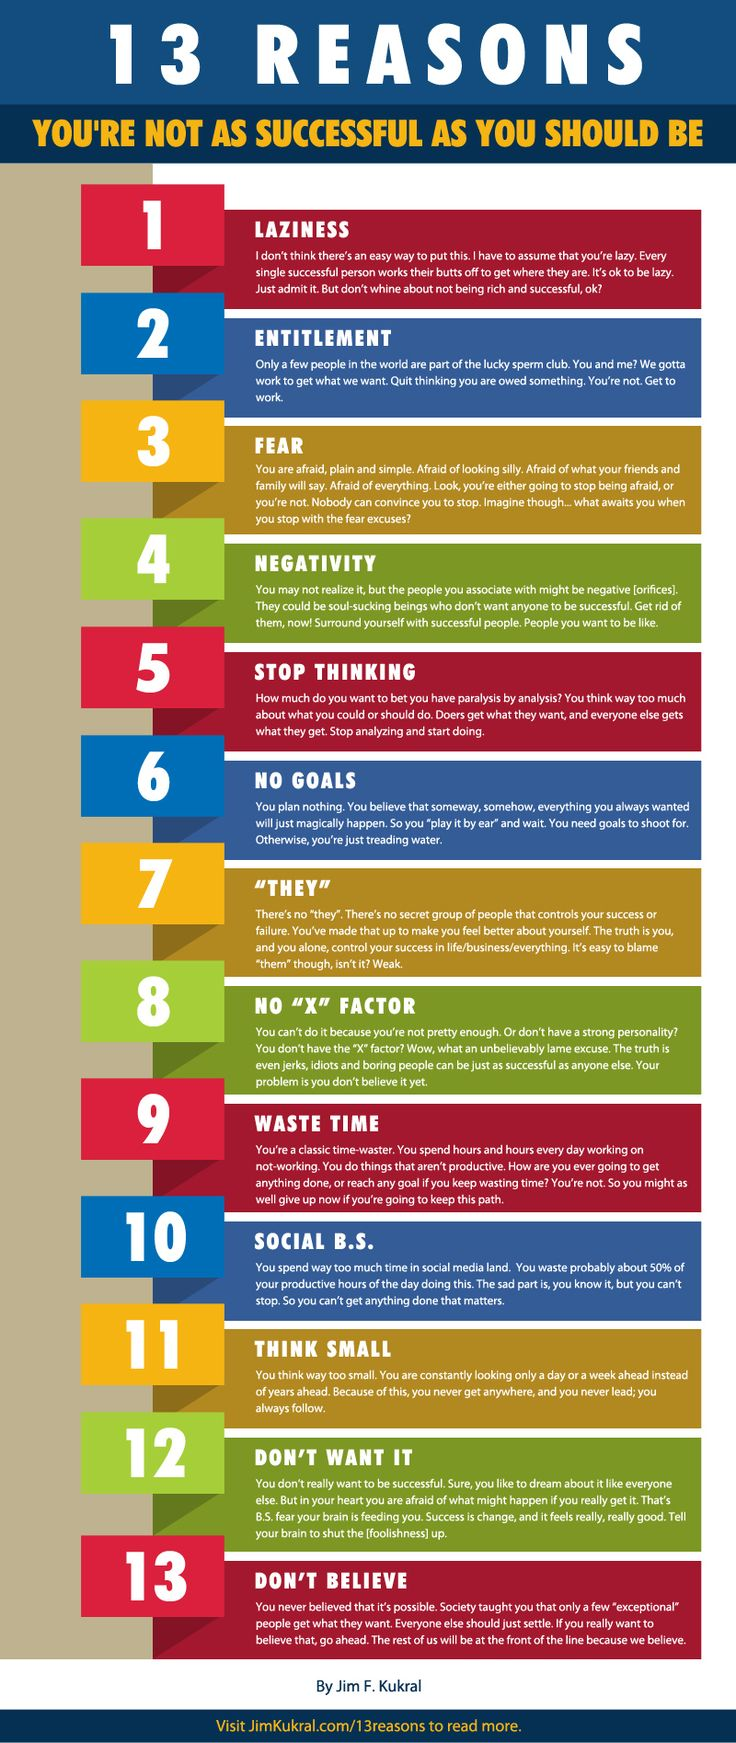 How to Become Successful: 13 Reasons You Aren't a Success #business #success #quotes #motivation #inspiraiton everydaypowerblog.com